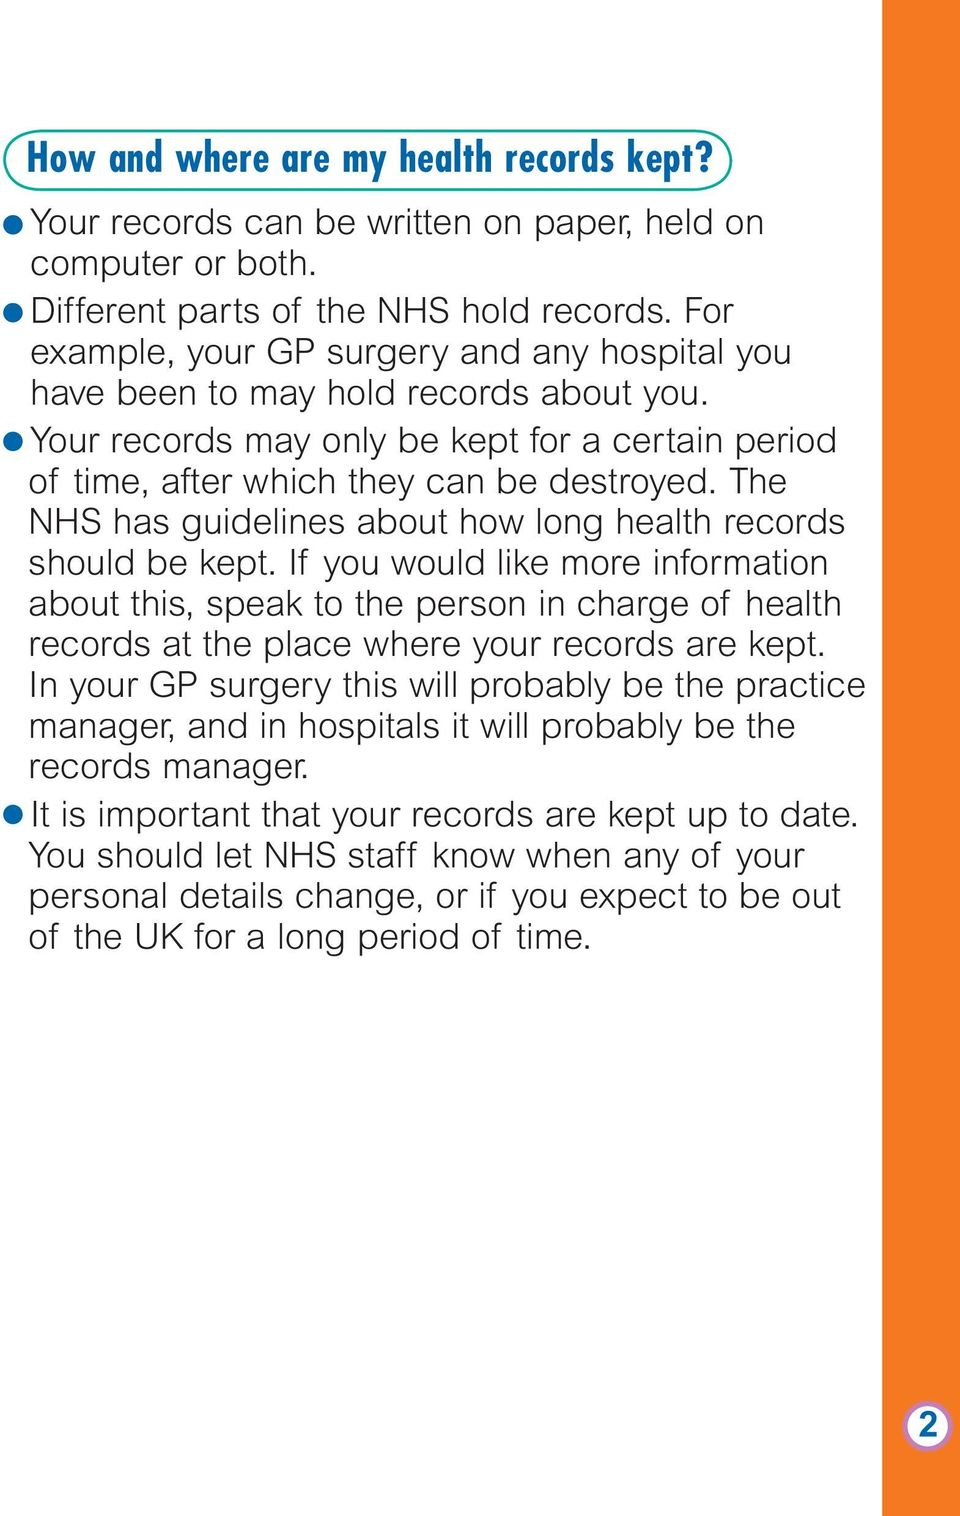 The NHS has guidelines about how long health records should be kept.